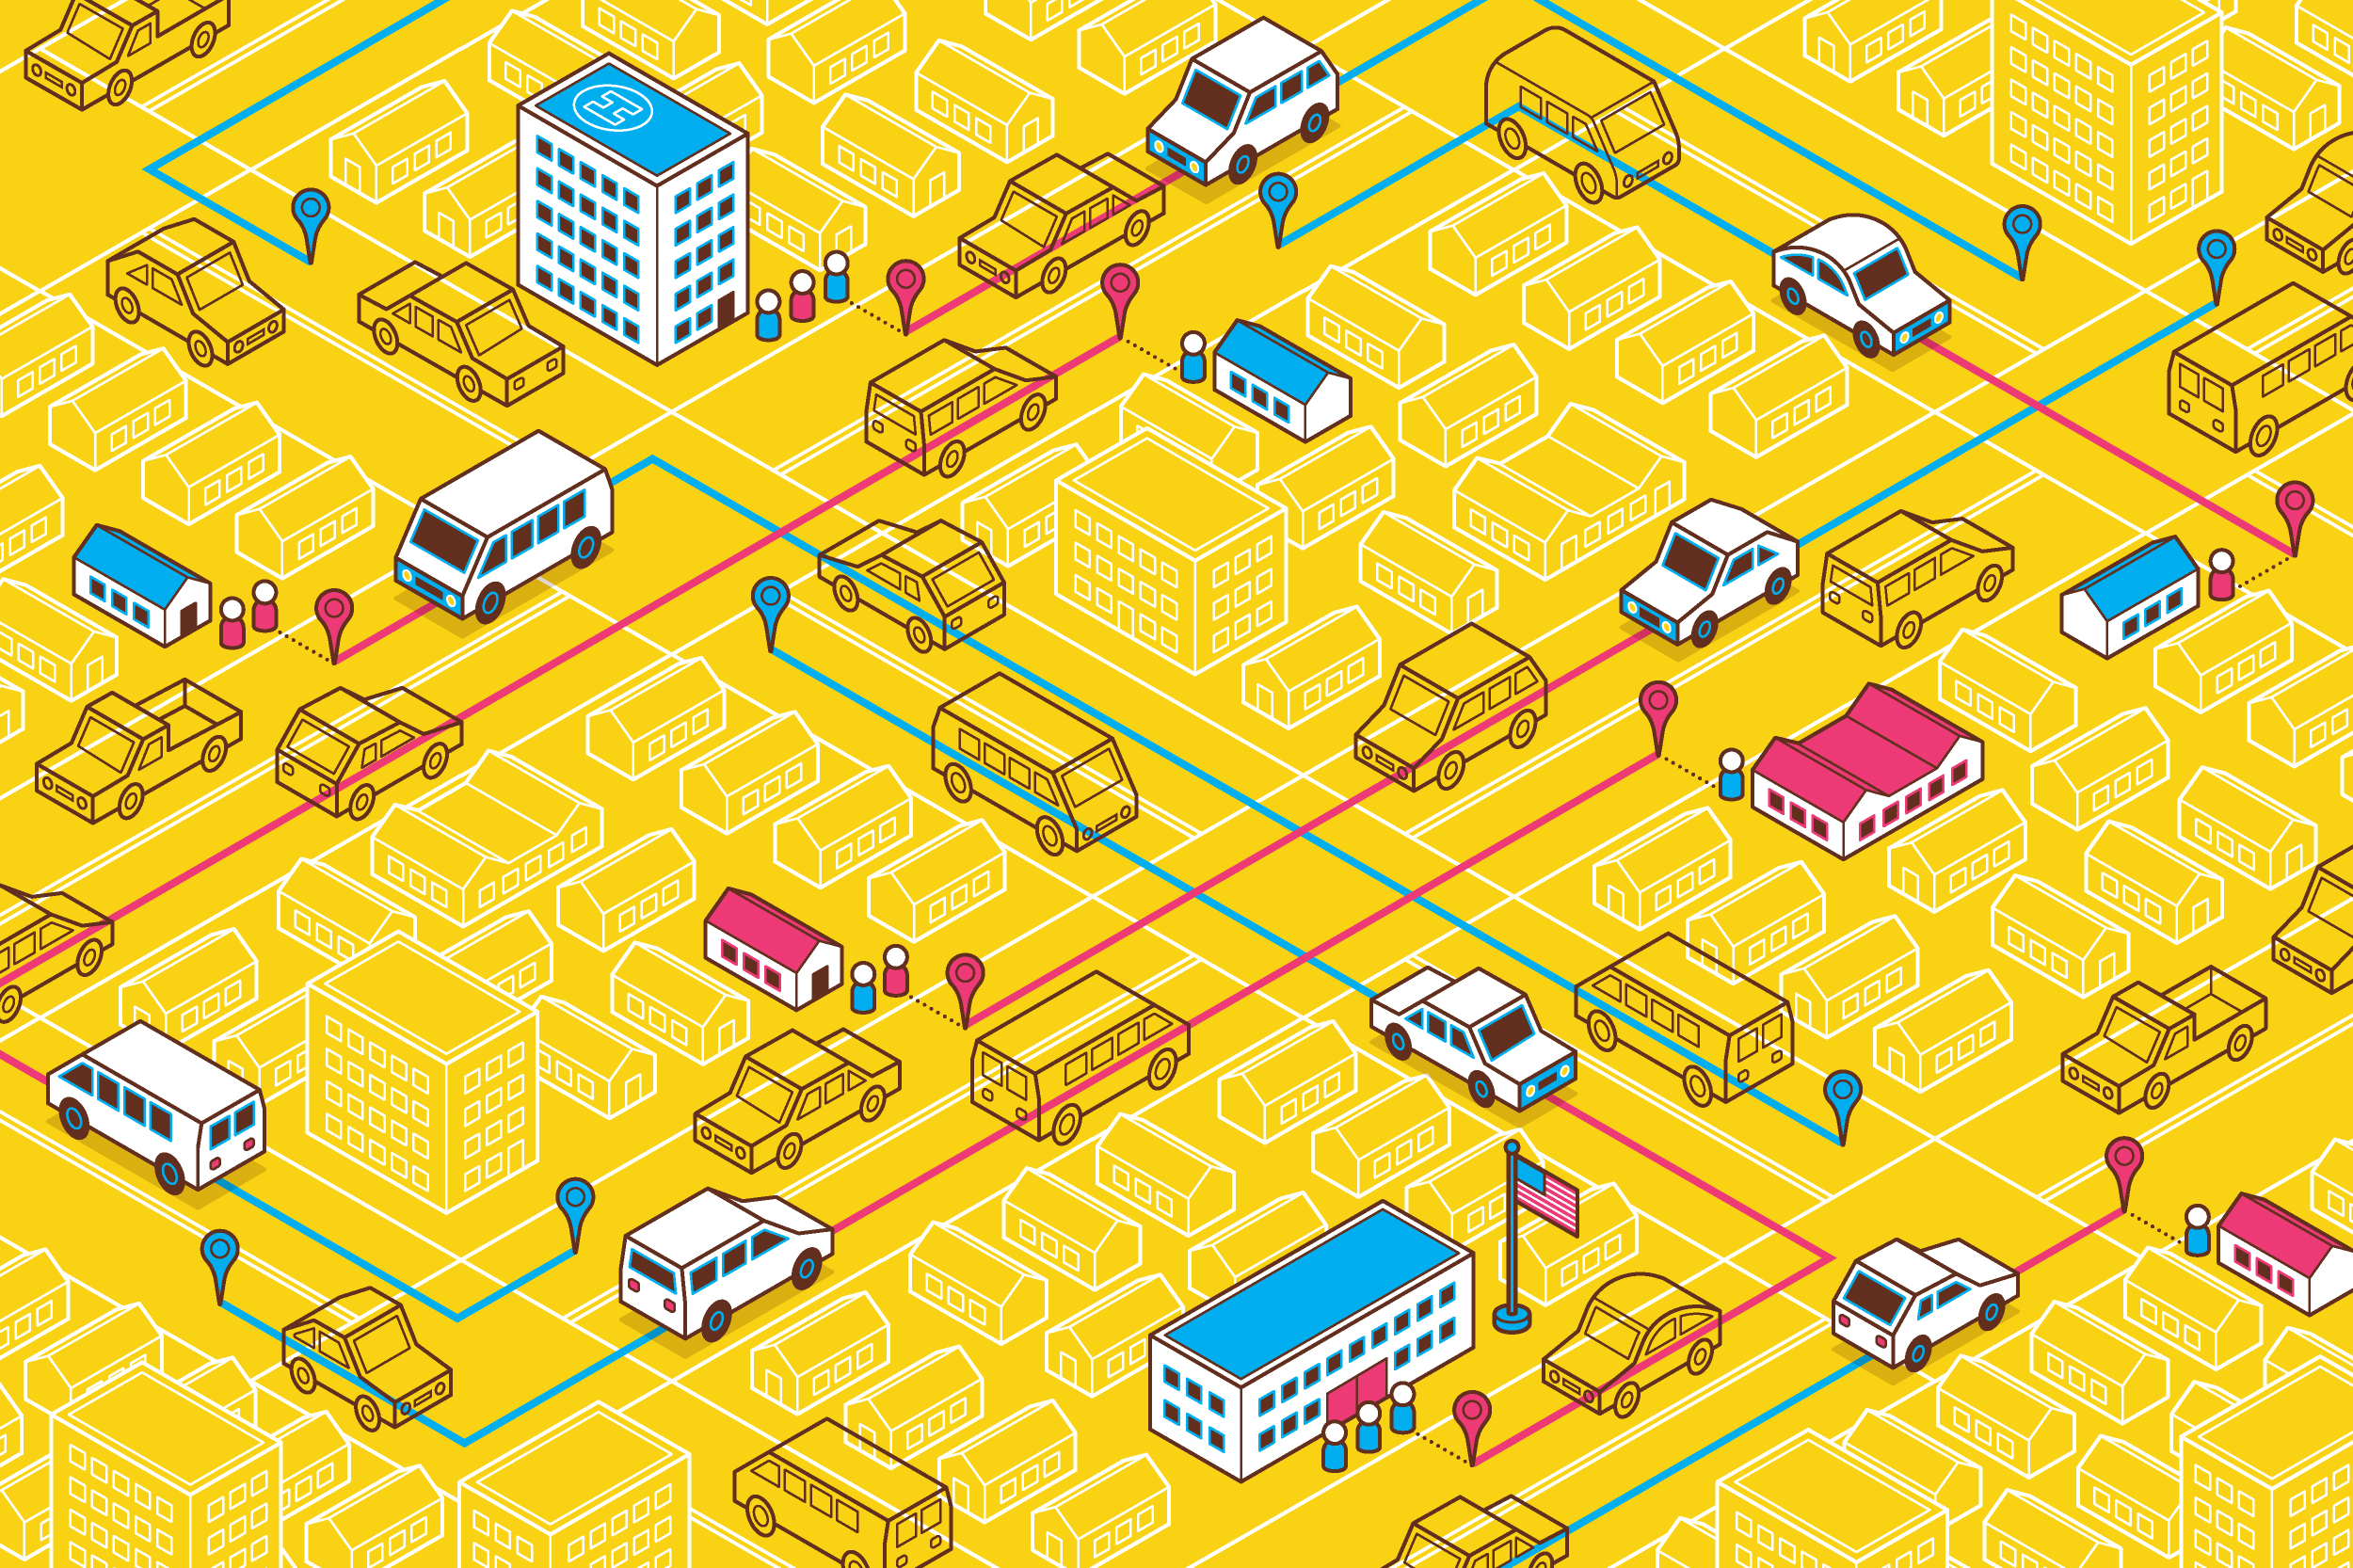 Uber wants to take over public transit, one small town at a time